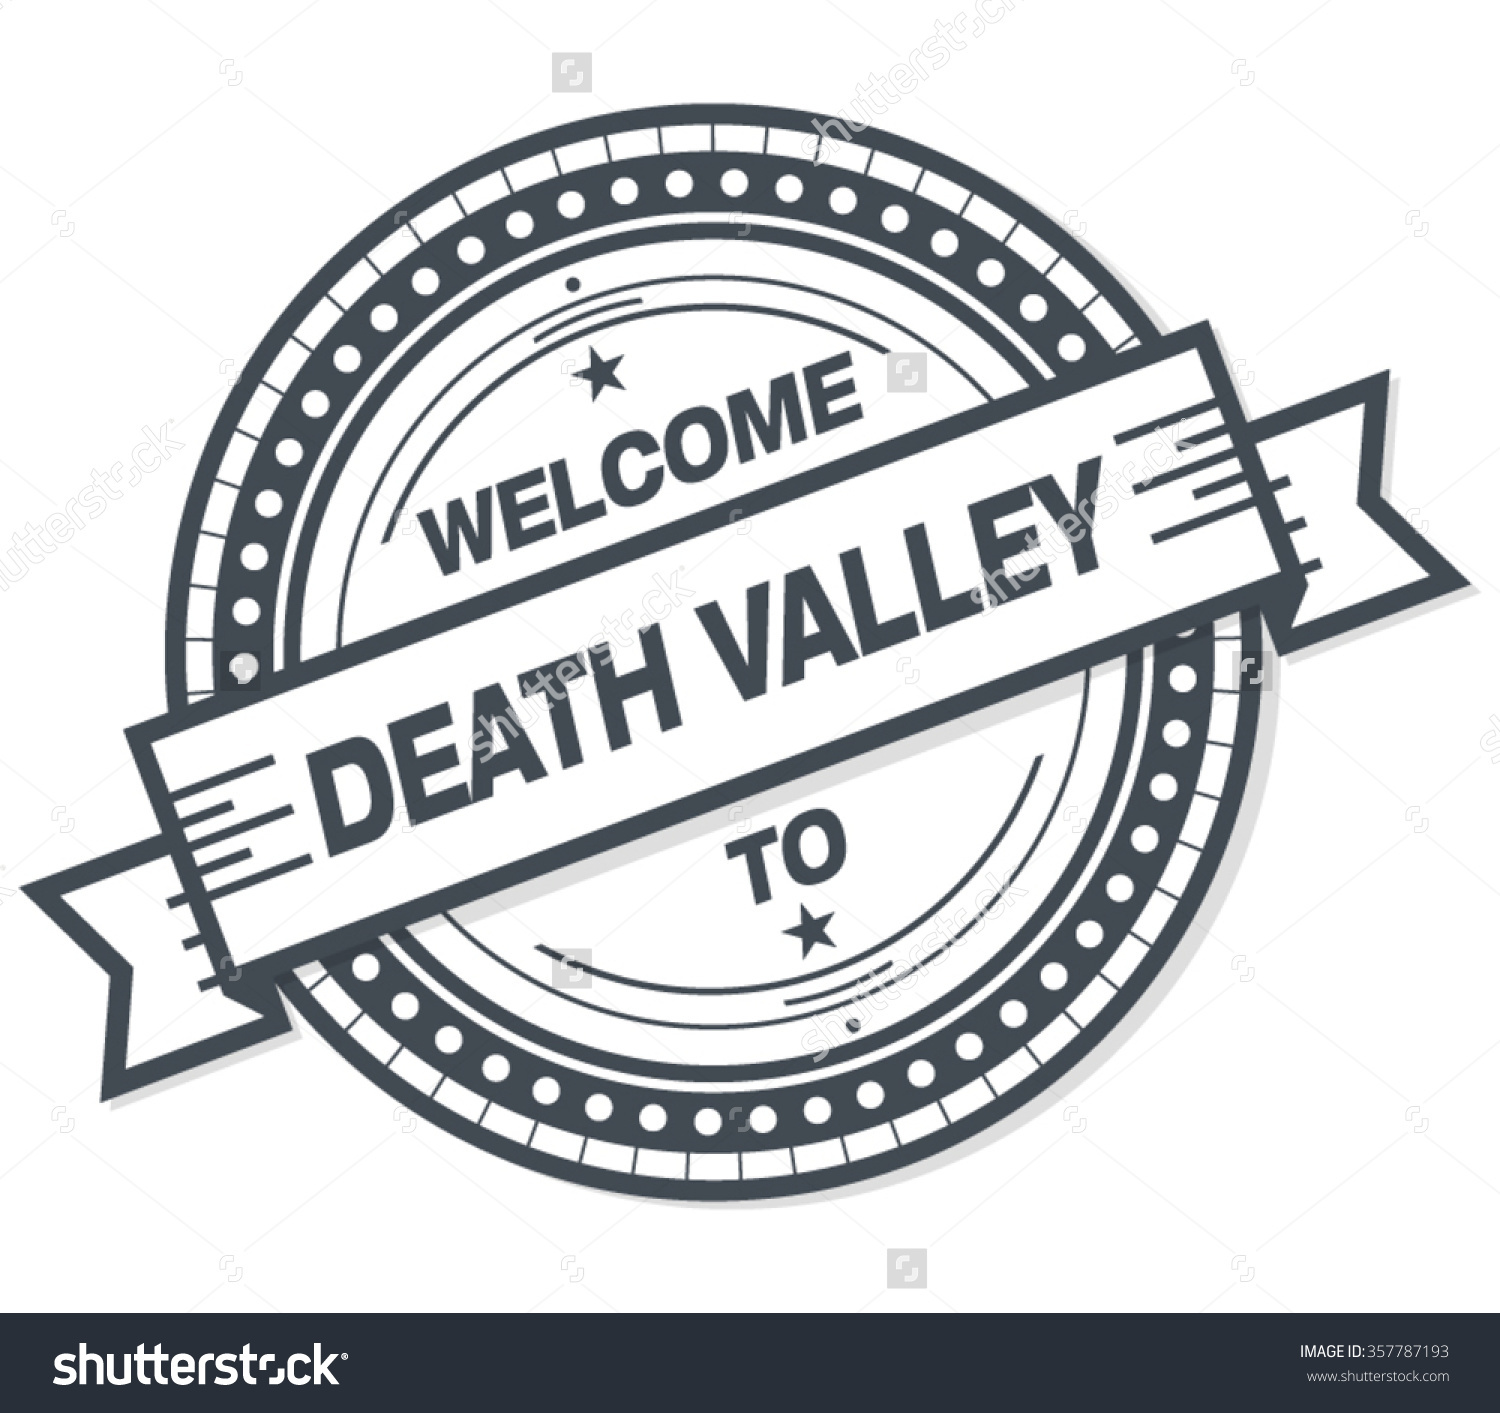 Death Valley clipart #1, Download drawings